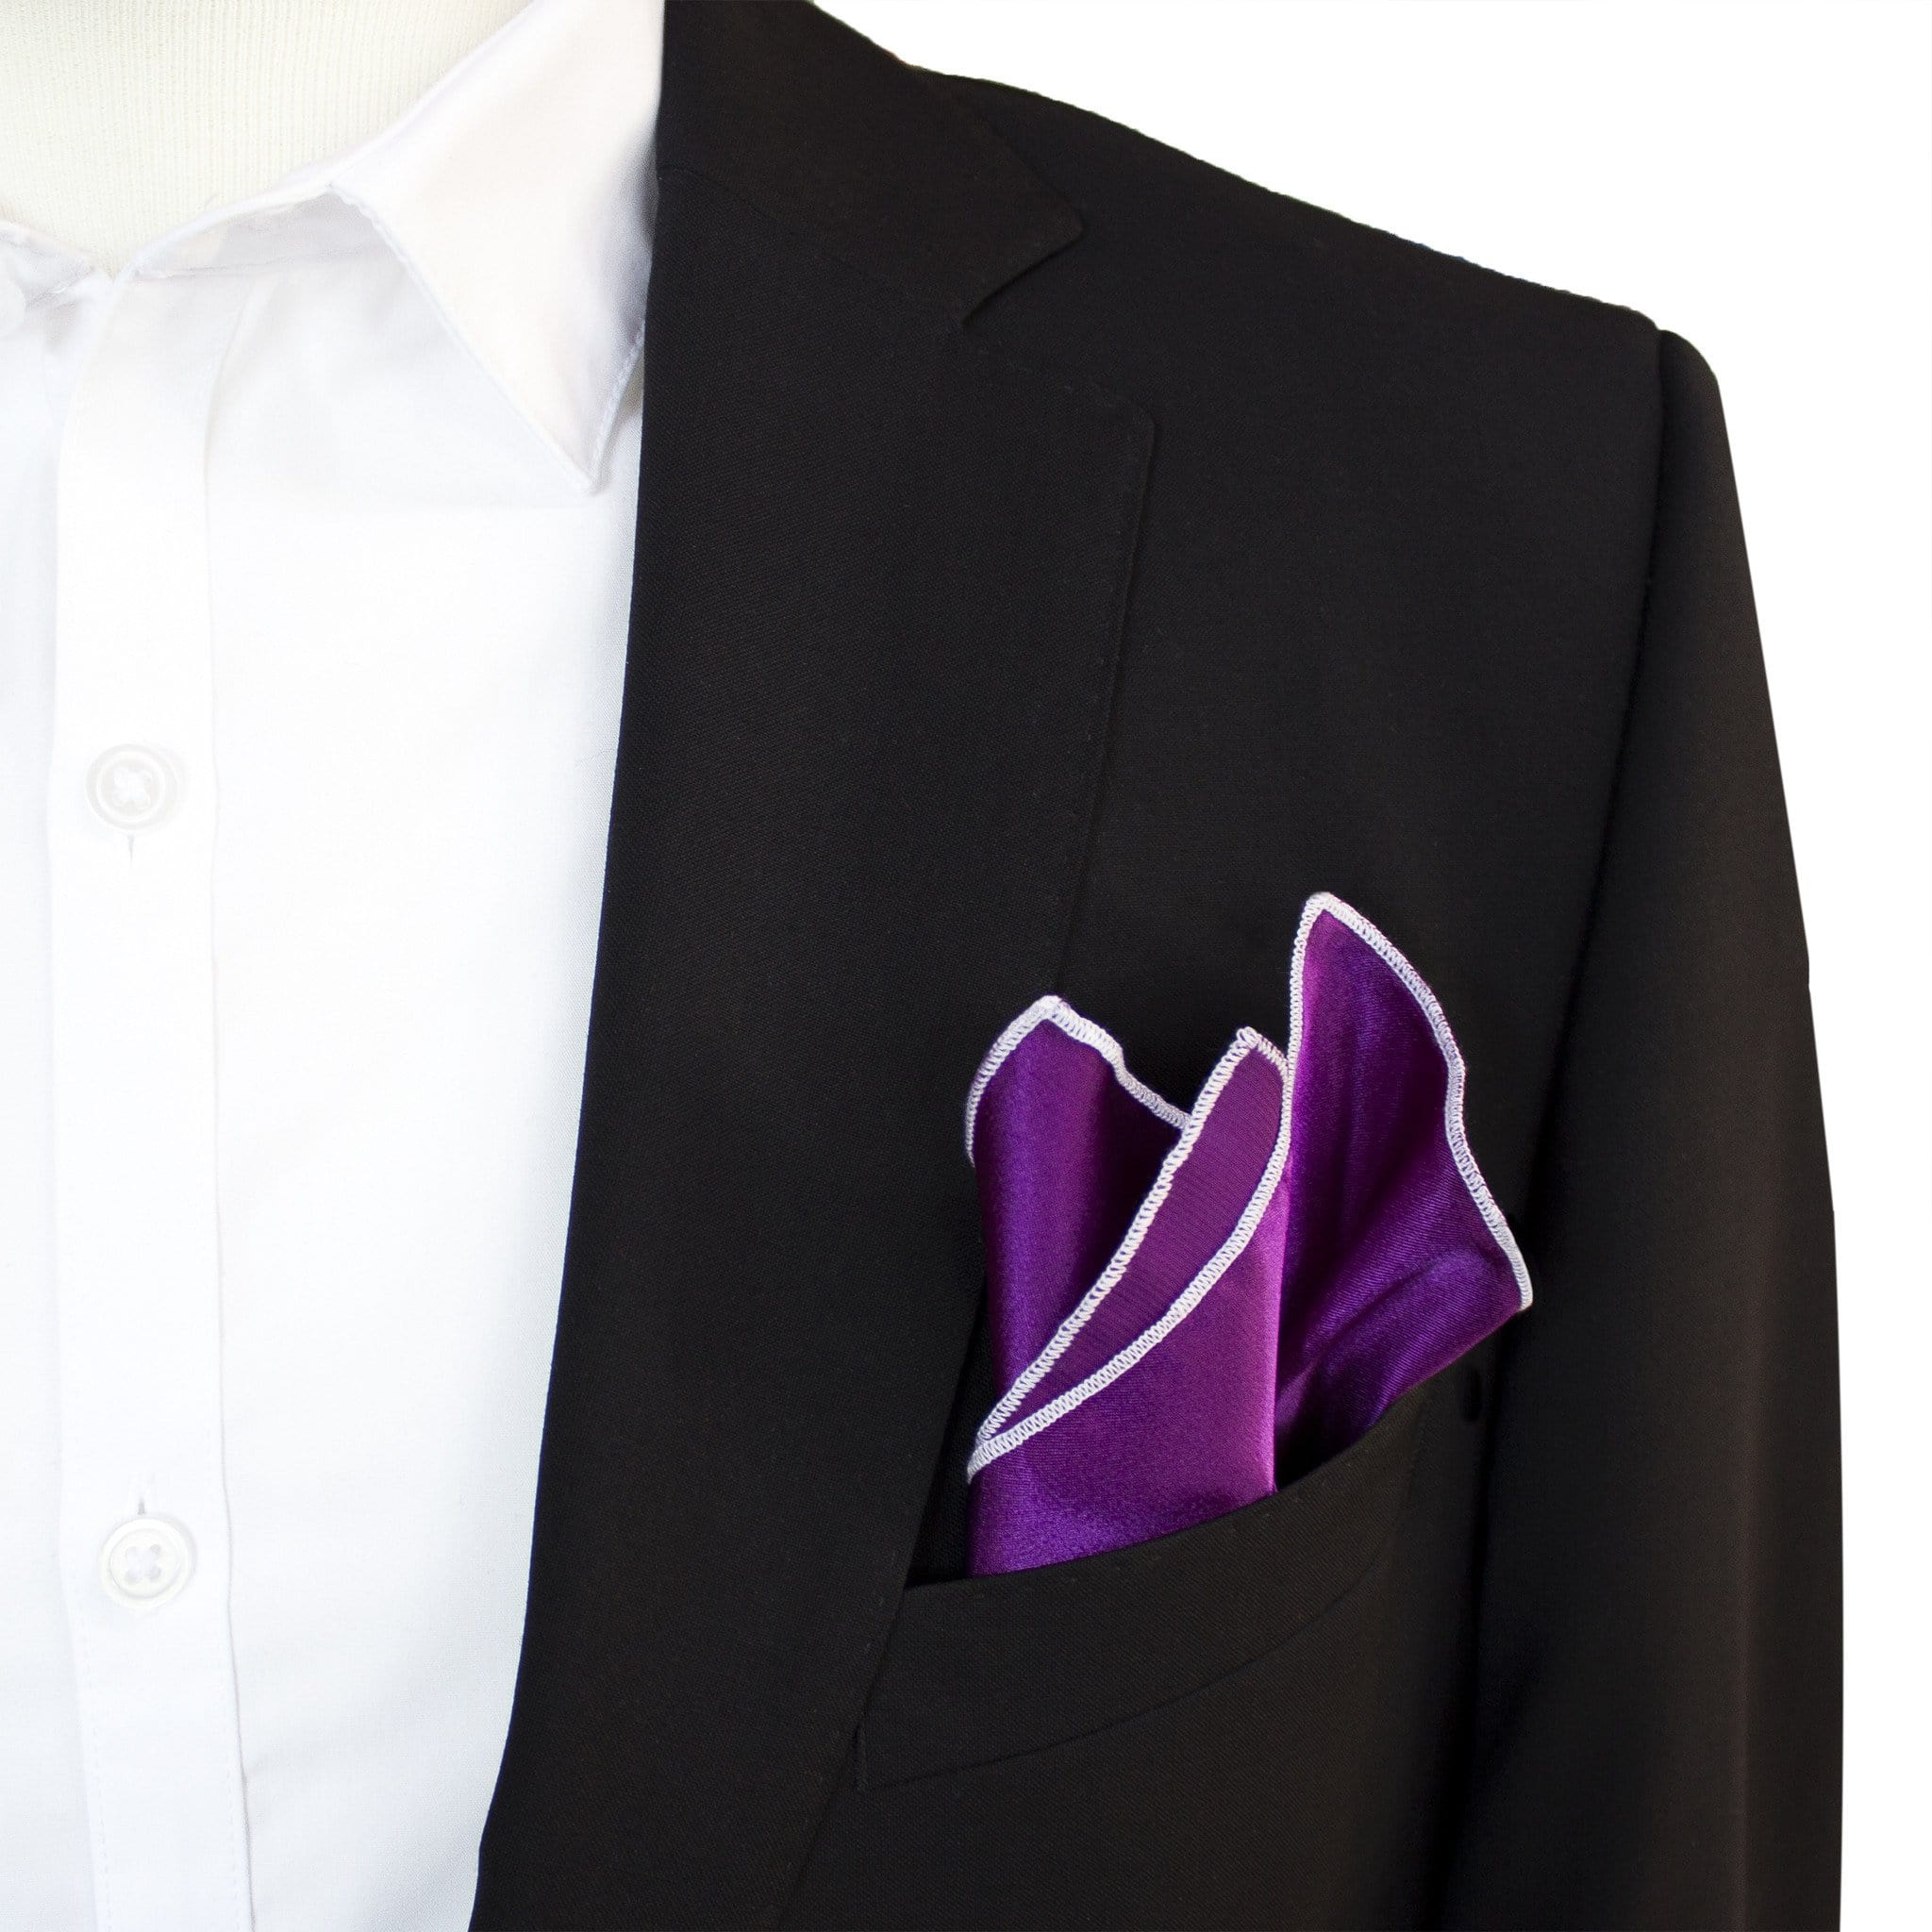 "Buster Purple - Merrow Stitch Pocket Square (11""x11"") - Stolen Riches"